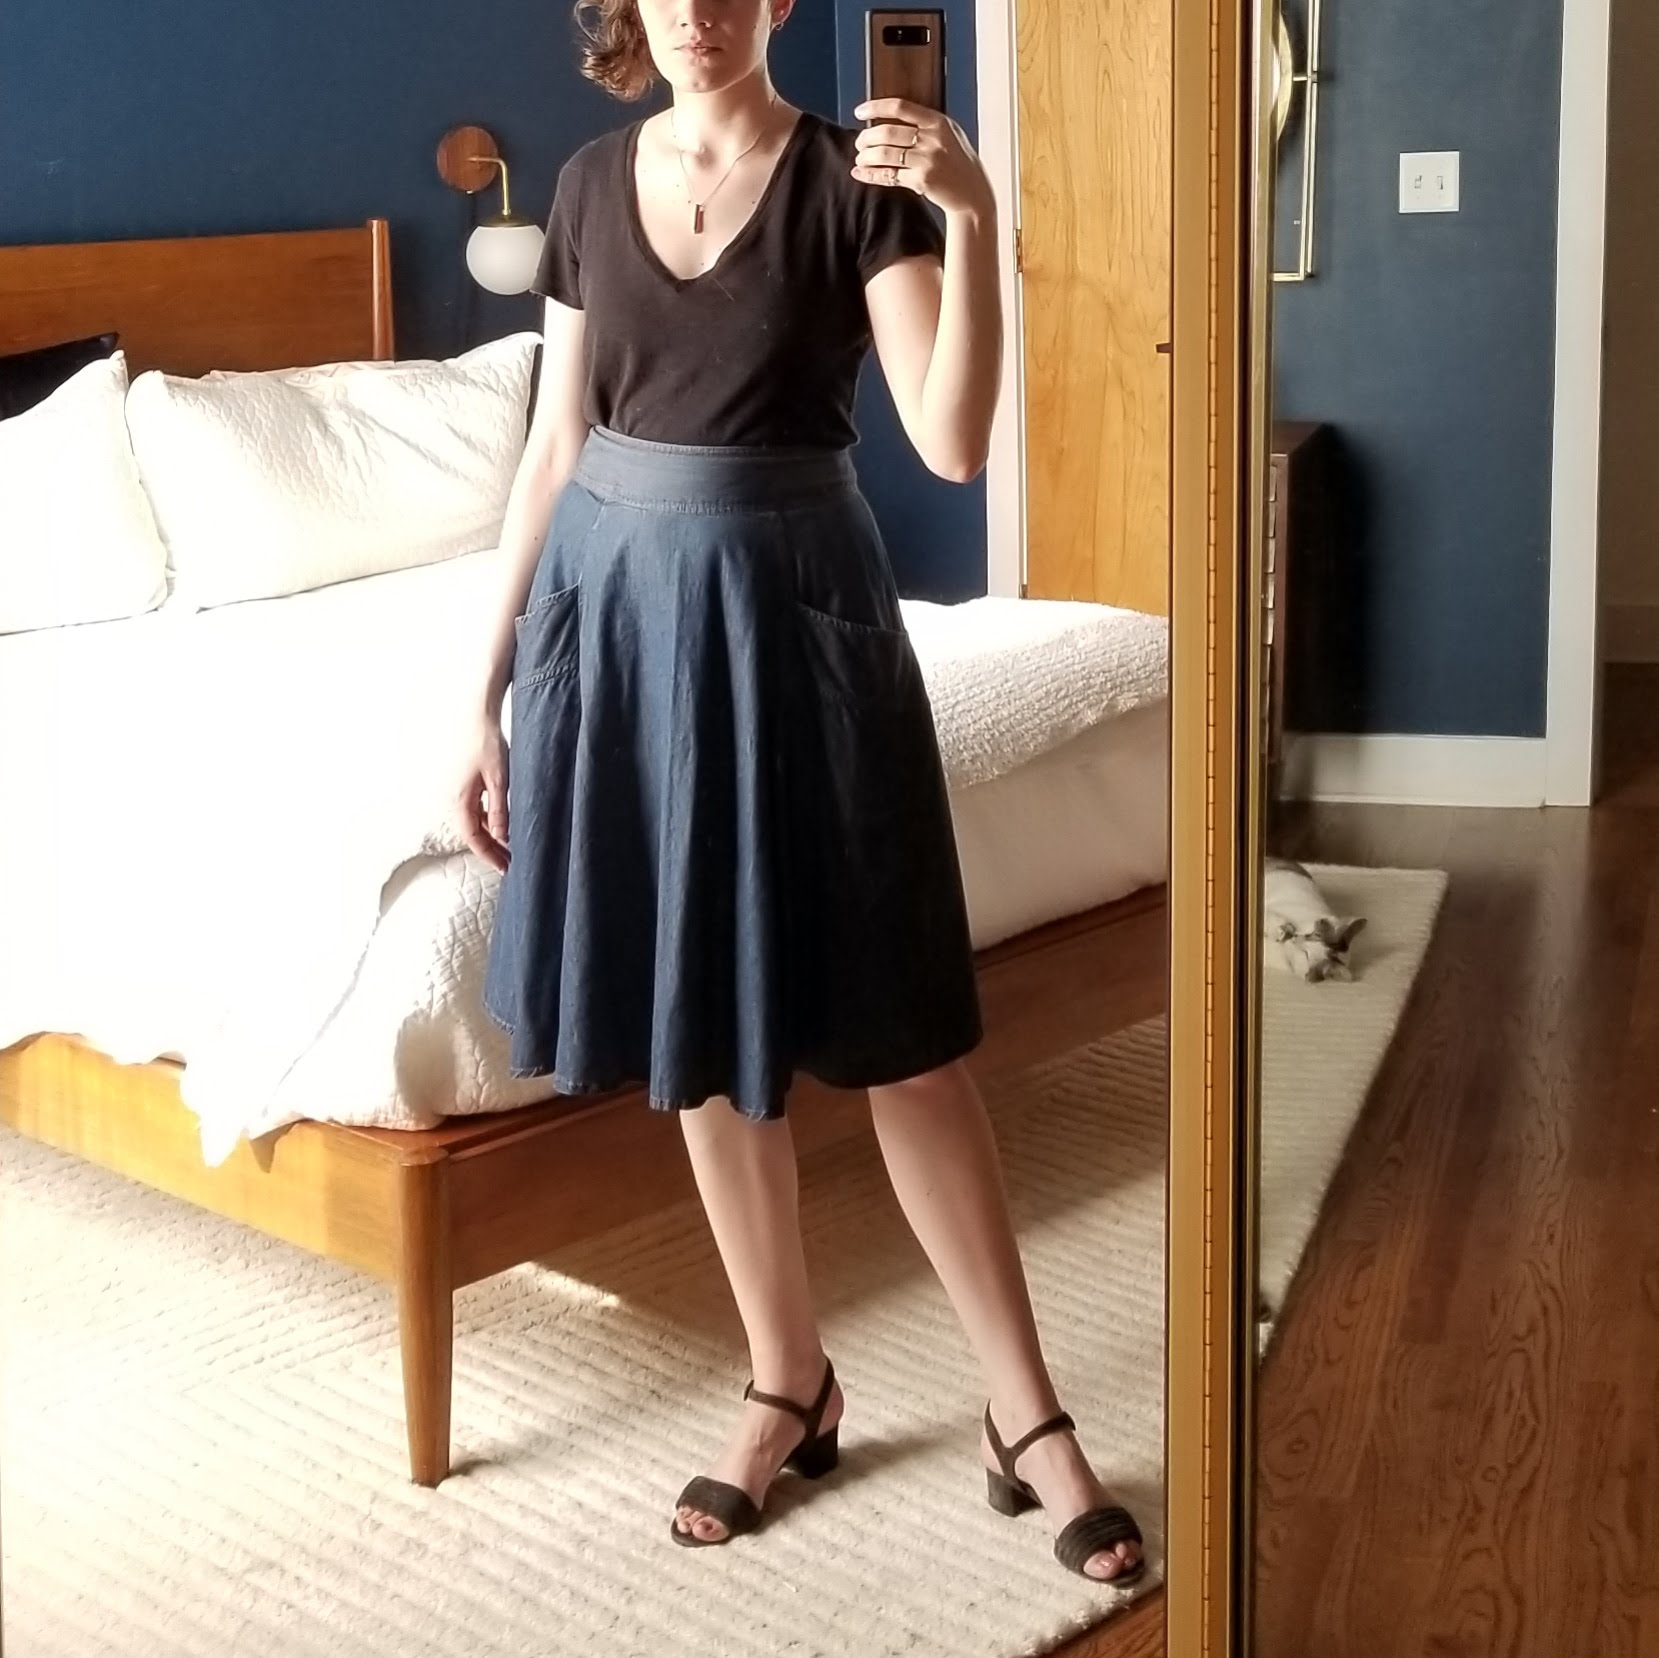 Monday - May 14, 2018Bolstered by the success of this skirt last week (Tuesday, May 8, 2018) despite it's more threadbare edges, I wore it again with a black tee and this time with block heel sandals. It still felt summery, easy, but styled. Am considering more seriously the idea of making a pattern from this one.